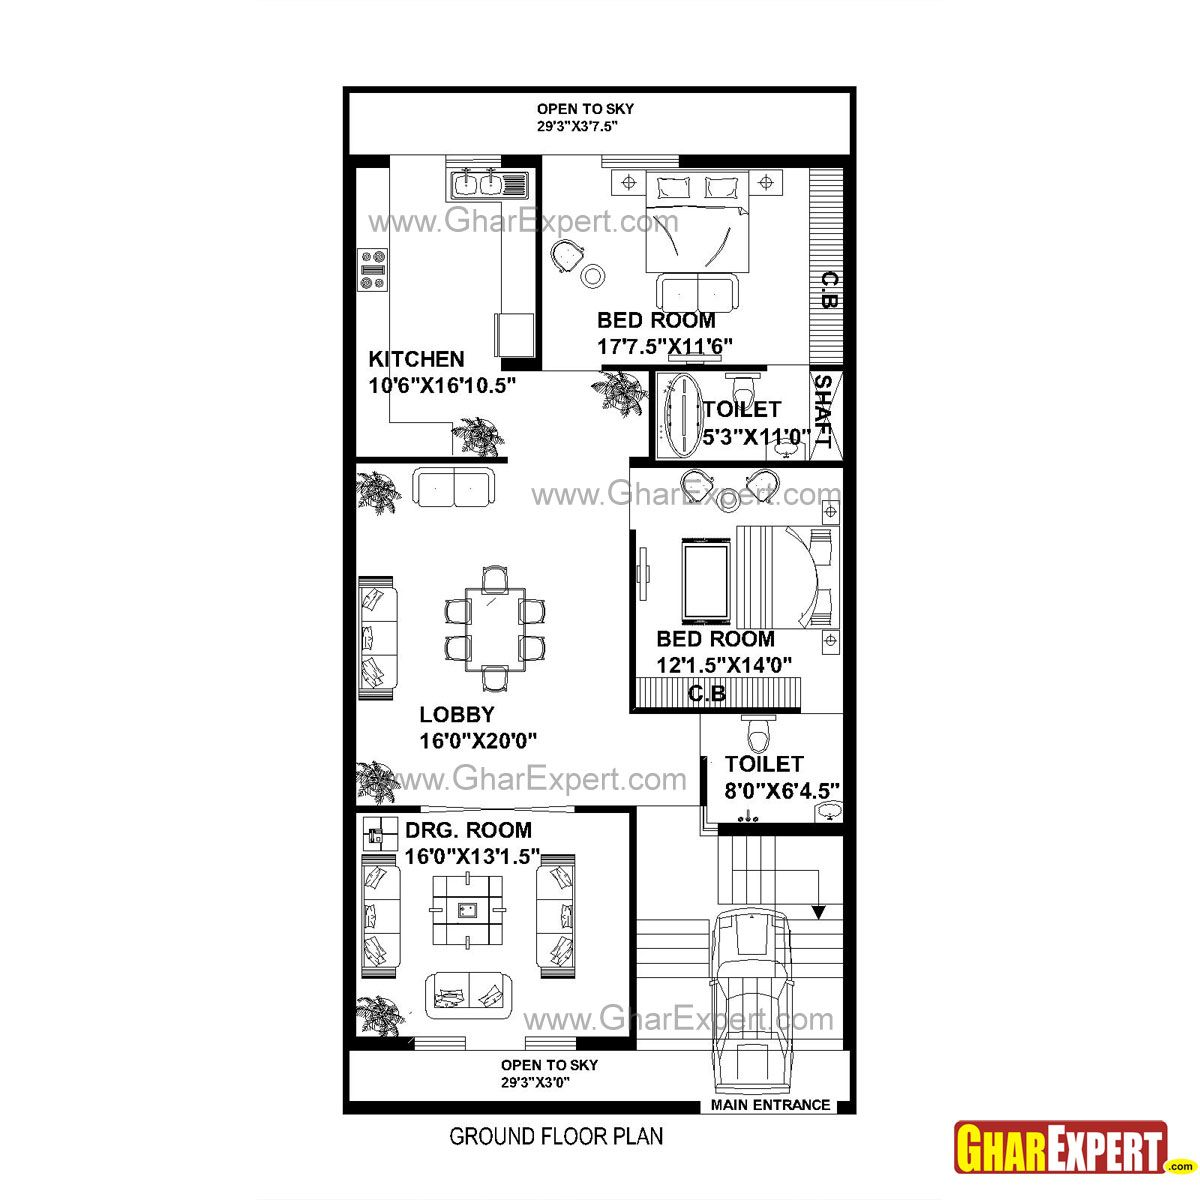 30 X 45 House Plans East Facing Arts 30x45 5520161 Planskill | House  X House Plan And Elevation on 20x20 house plans, 40x40 house plans, 40x100 house plans, 24x36 house plans, 12x12 house plans, 20x40 house plans, 50x80 house plans, 20x30 house plans, 10x15 house plans, 25x50 house plans, 24x32 house plans, 36x36 house plans, 10x20 house plans, 30x35 house plans, 30x60 house plans, 10x30 house plans, 25x35 house plans, 40x80 house plans, 50x70 house plans, 30x40 house plans,